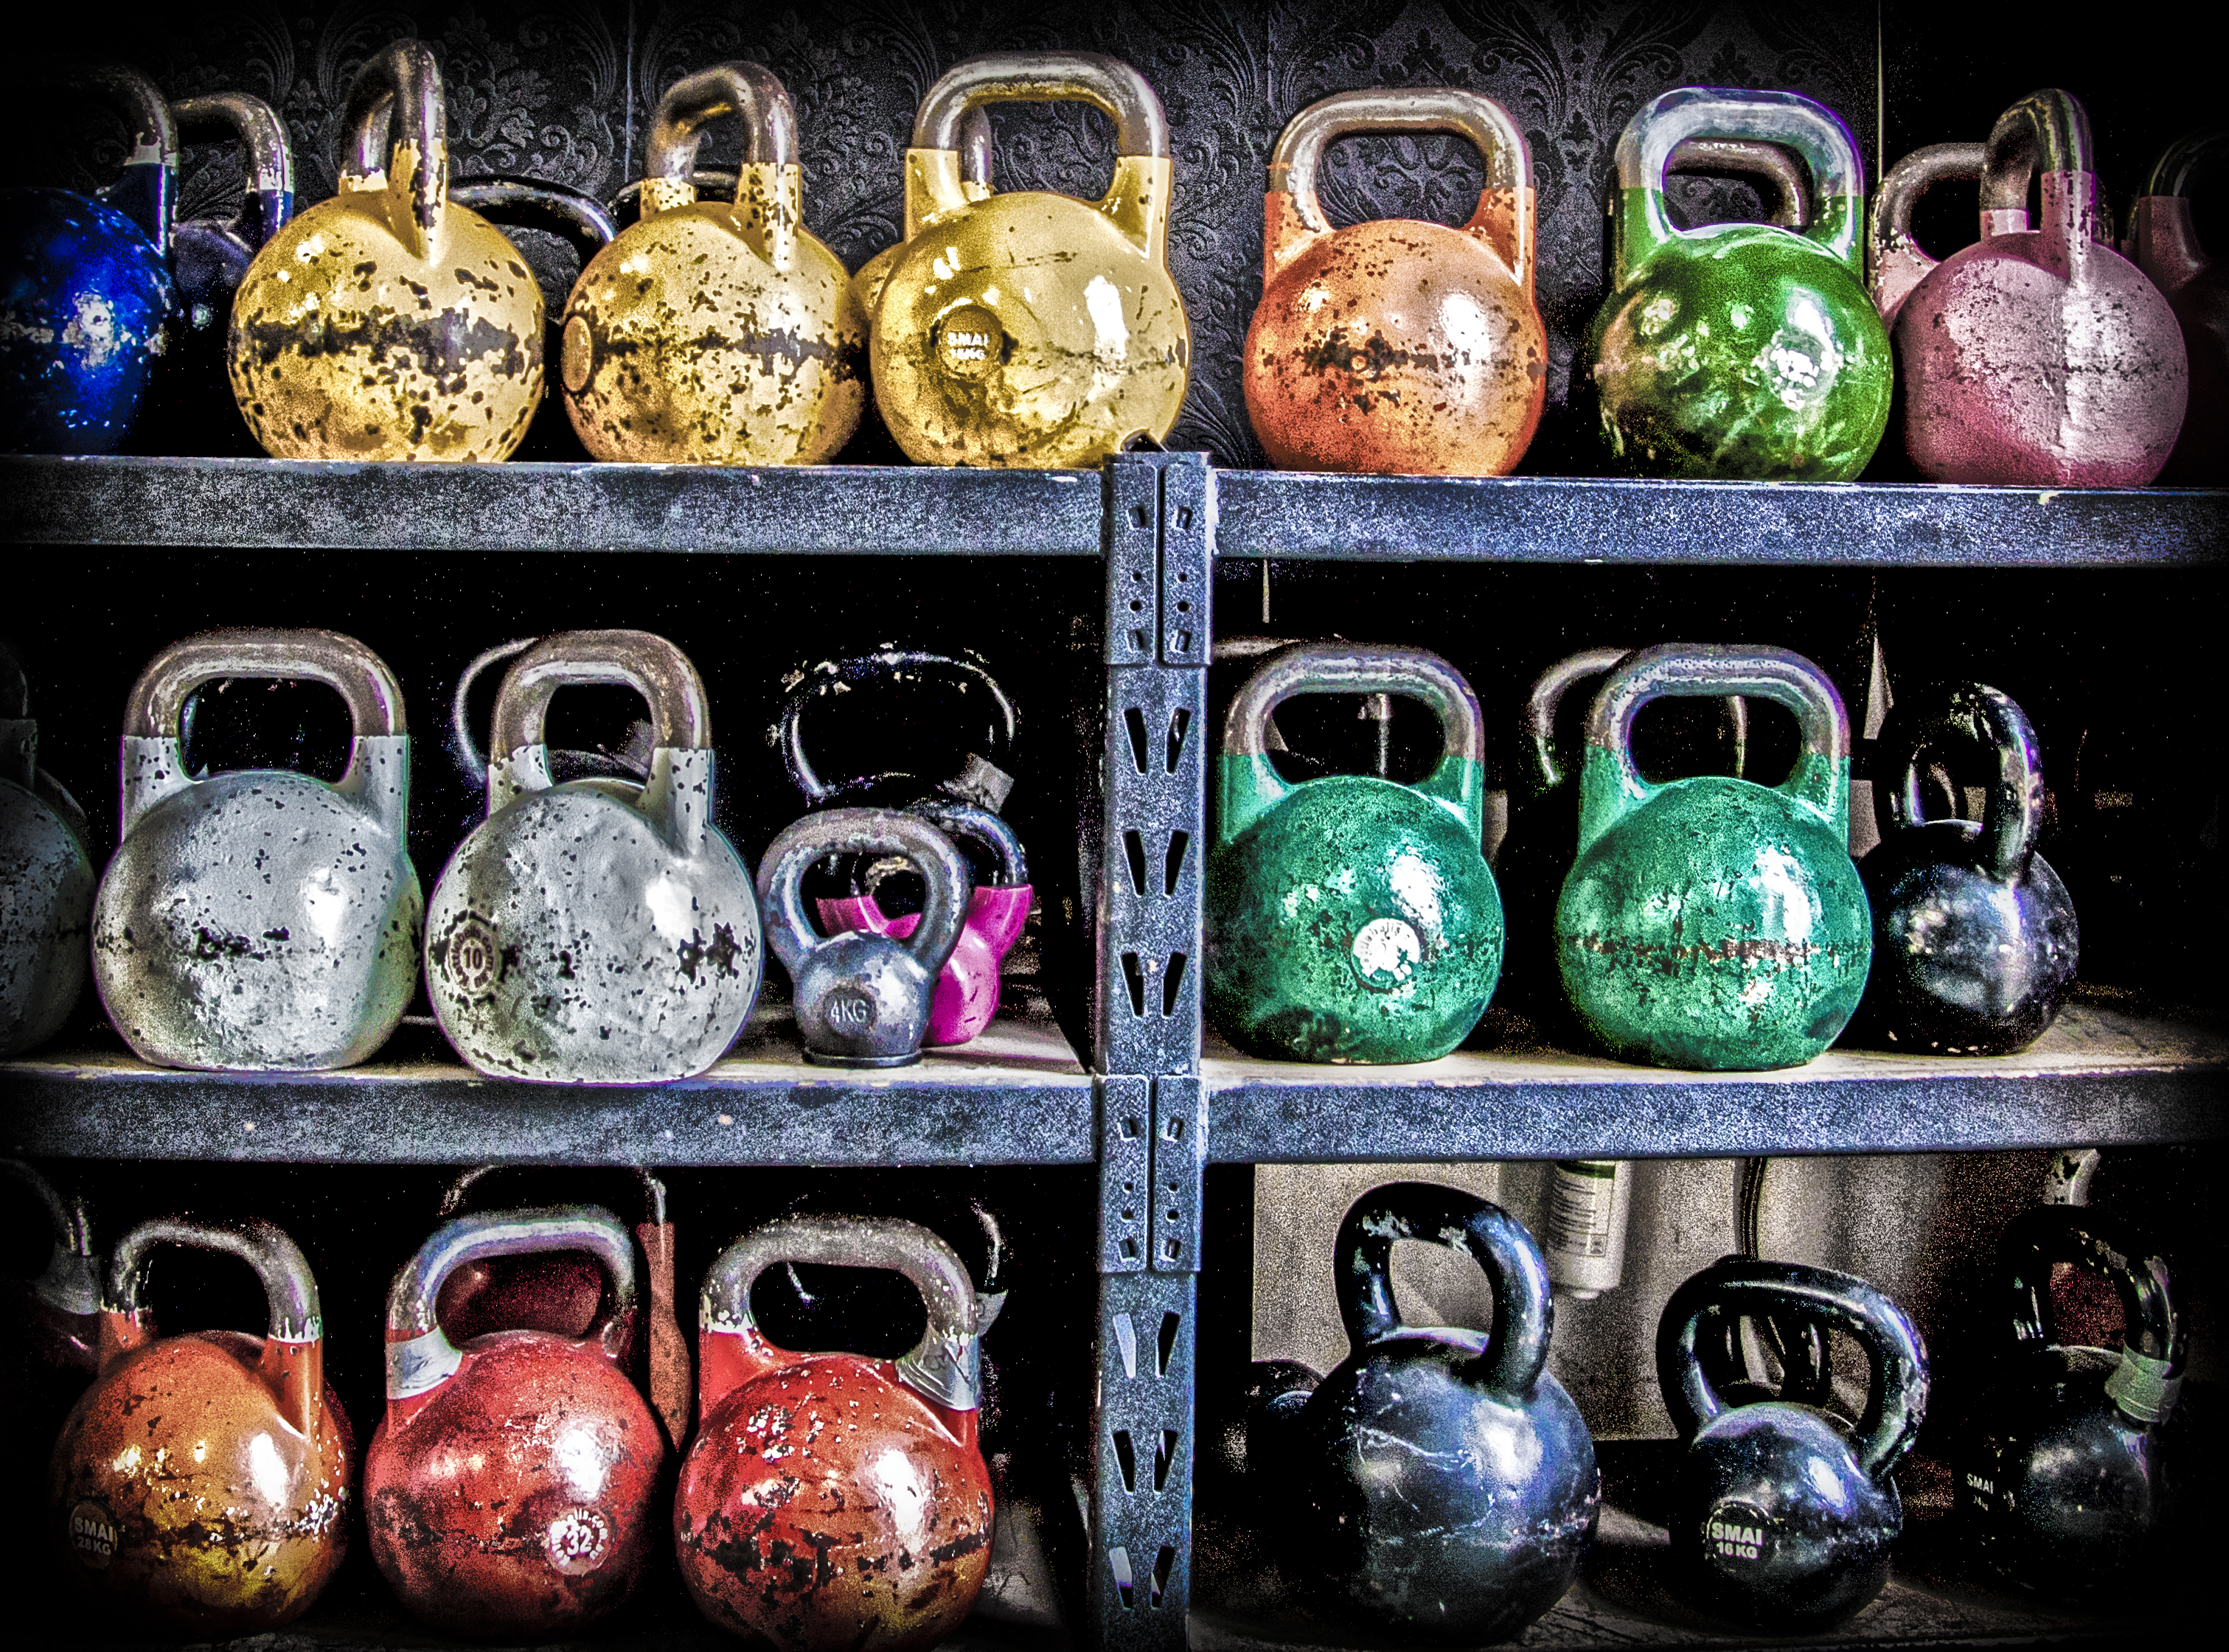 Kettle bell Heaven, Colorful, Crossfit, Exercise, Fitness, HQ Photo